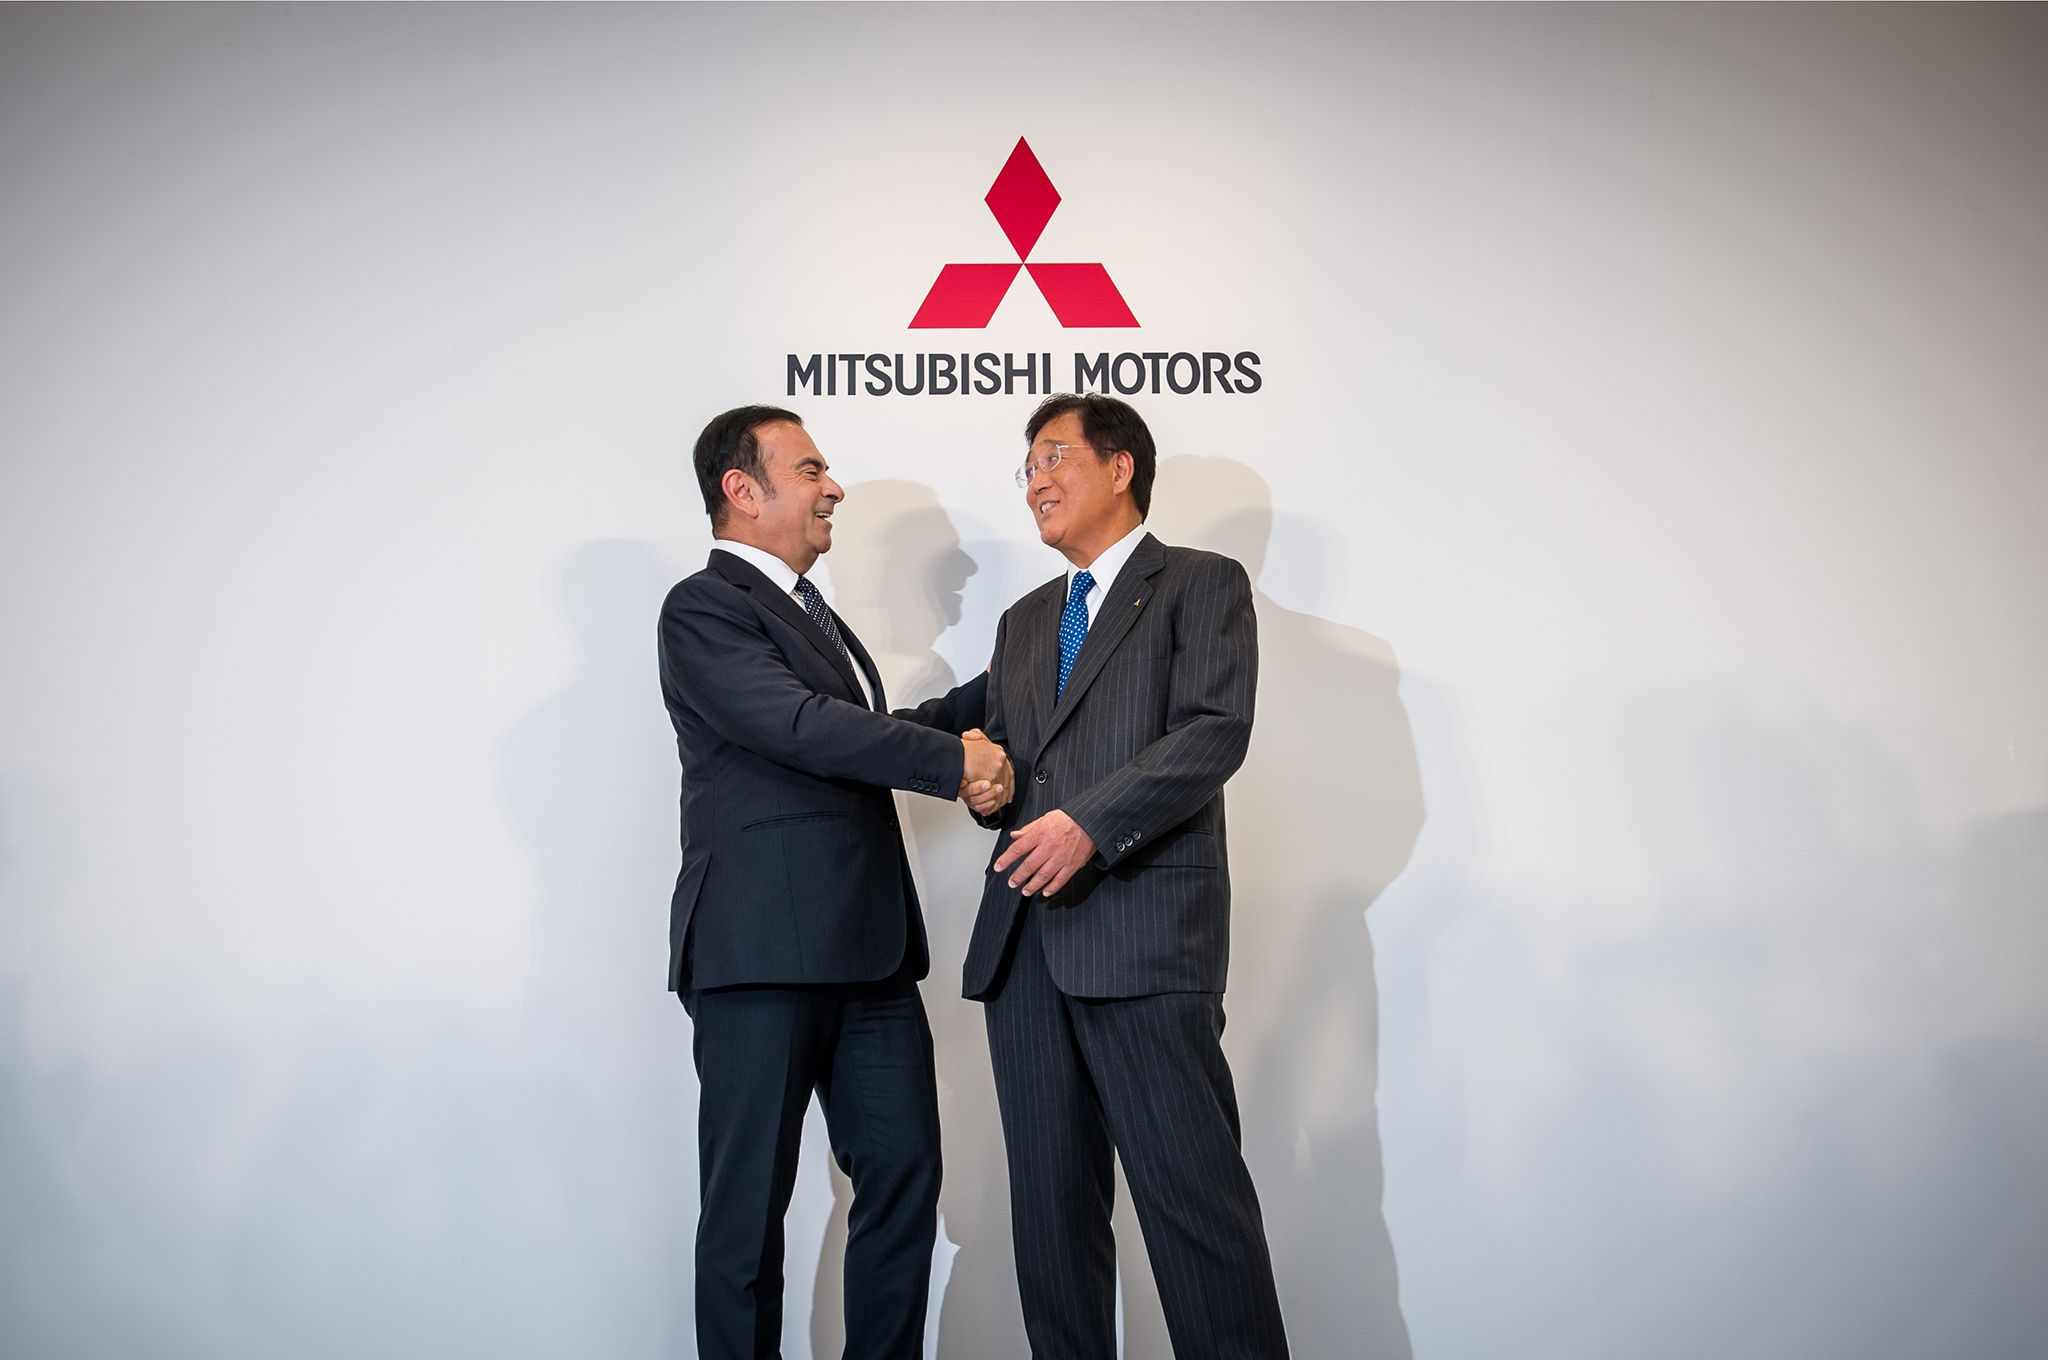 The Nissan-Mitsubishi partnership is already benefiting both brands. See what the joint venture will bring! #Mitsubishi #Nissan #Partnership #Brands #Business #Automotive #Industry